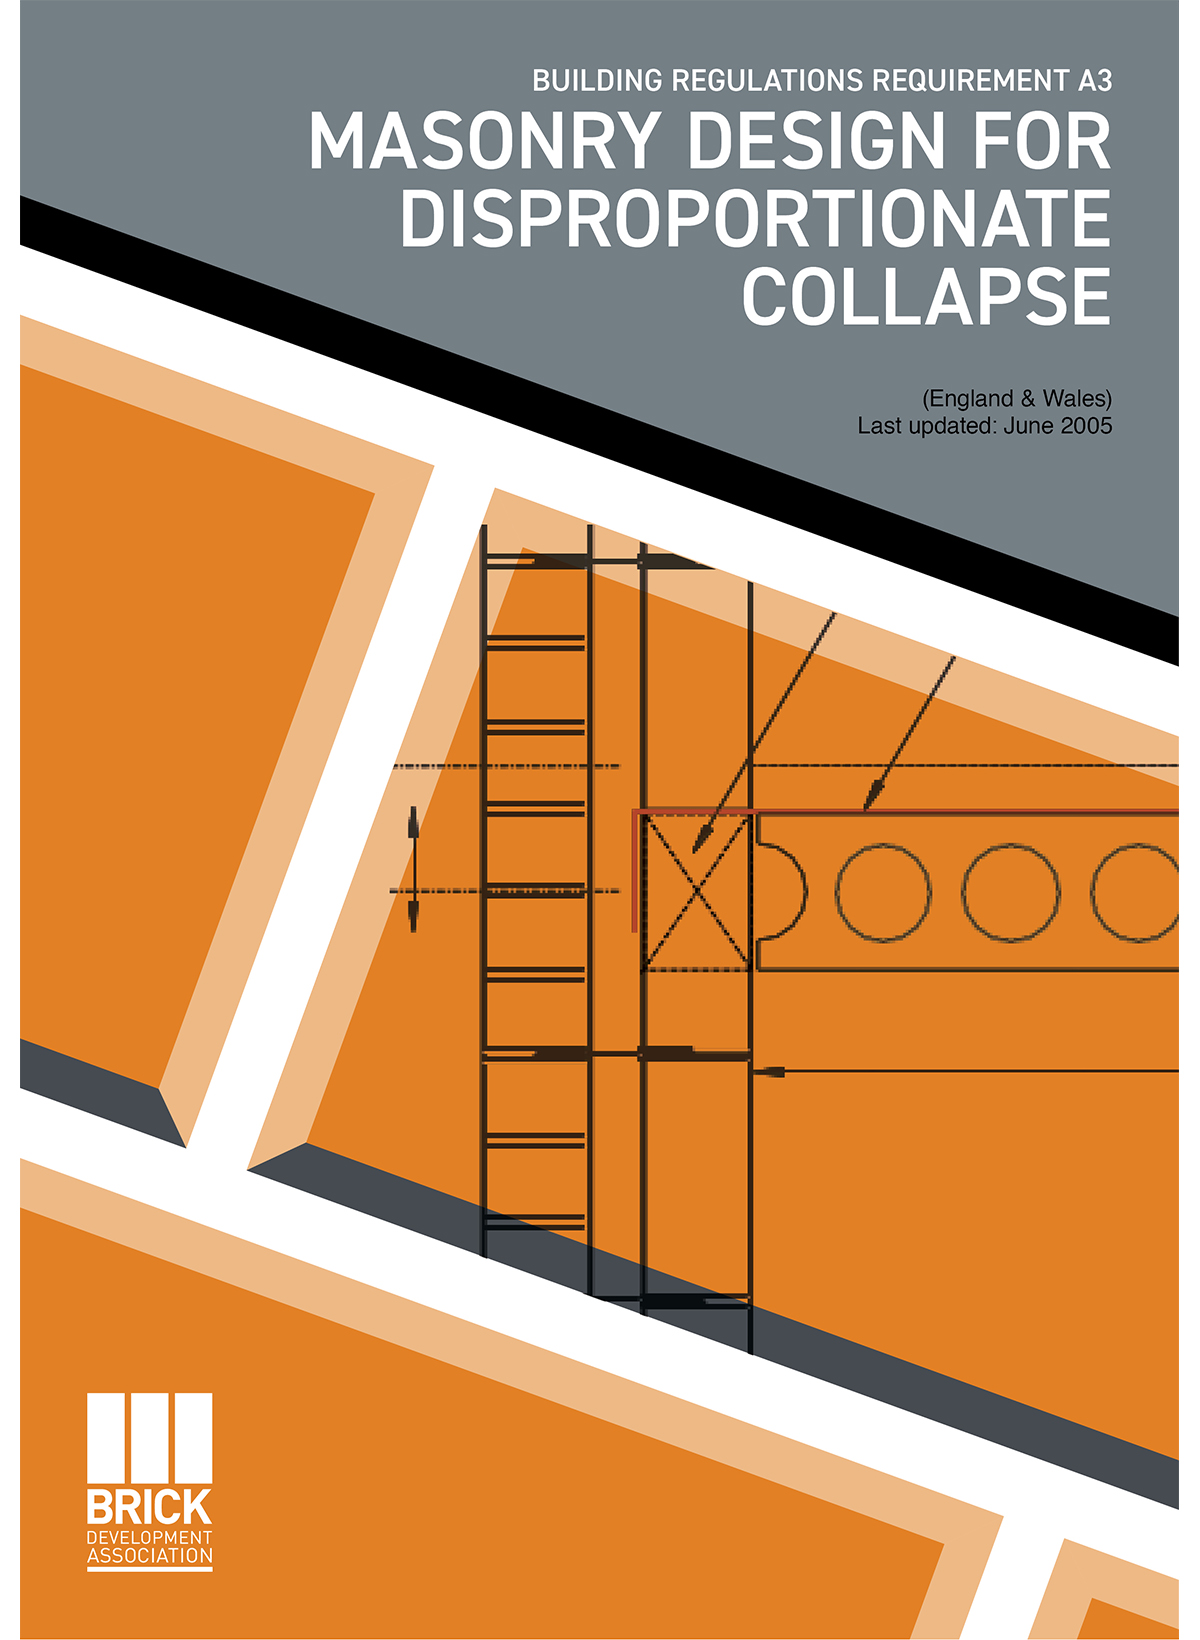 MASONRY DESIGN FOR DISPROPORTIONATE COLLAPSE